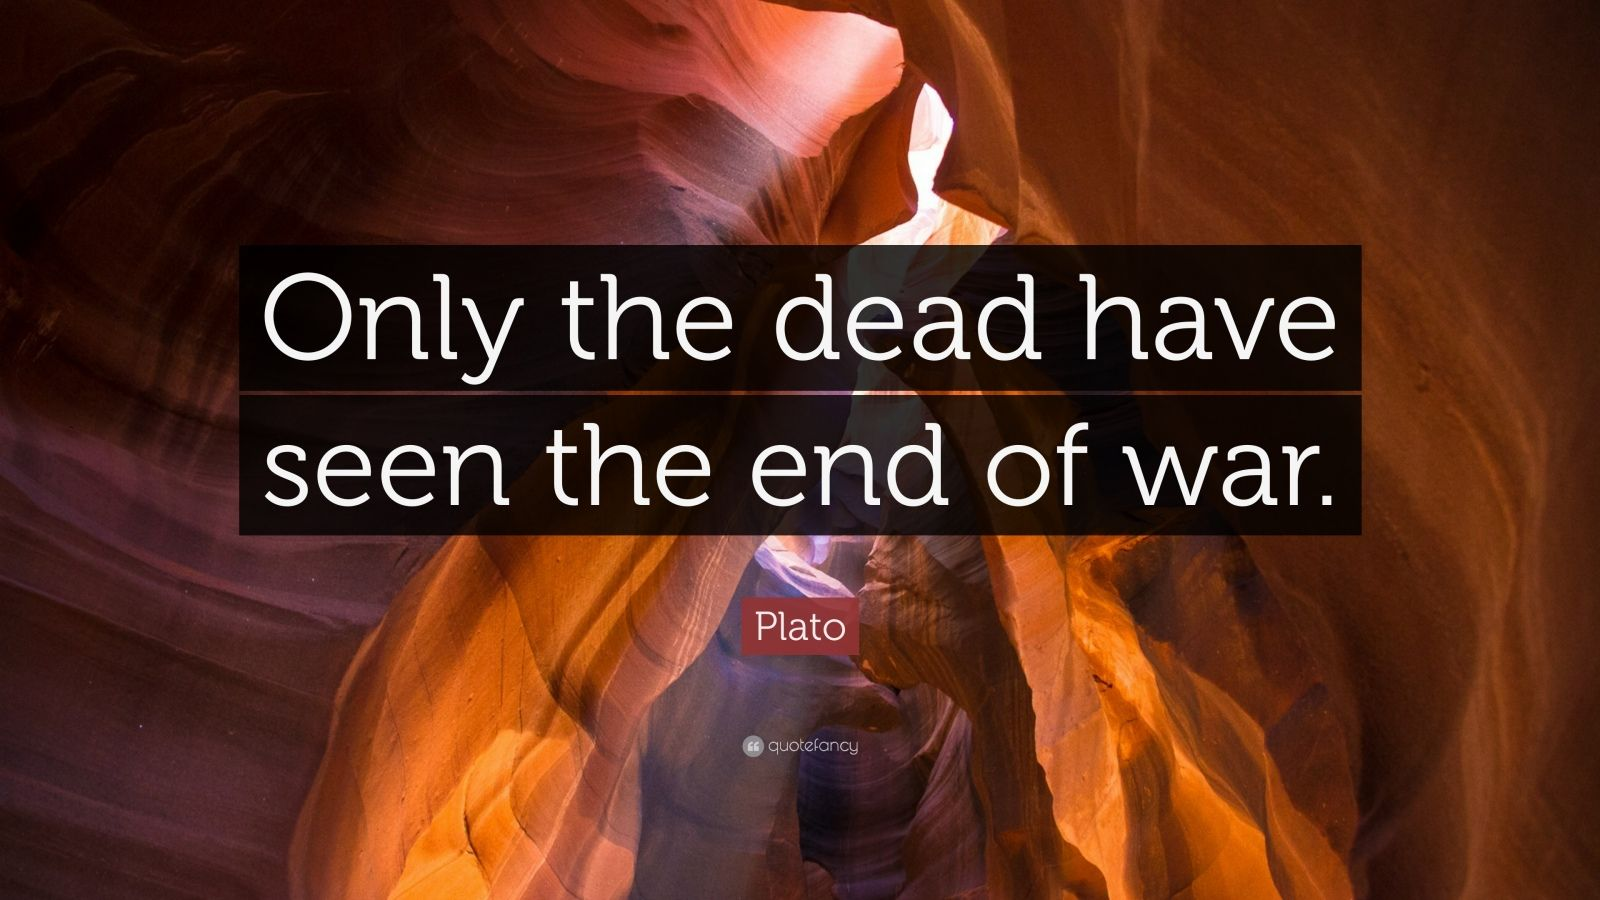 Nietzsche Quotes Wallpaper Plato Quote Only The Dead Have Seen The End Of War 16